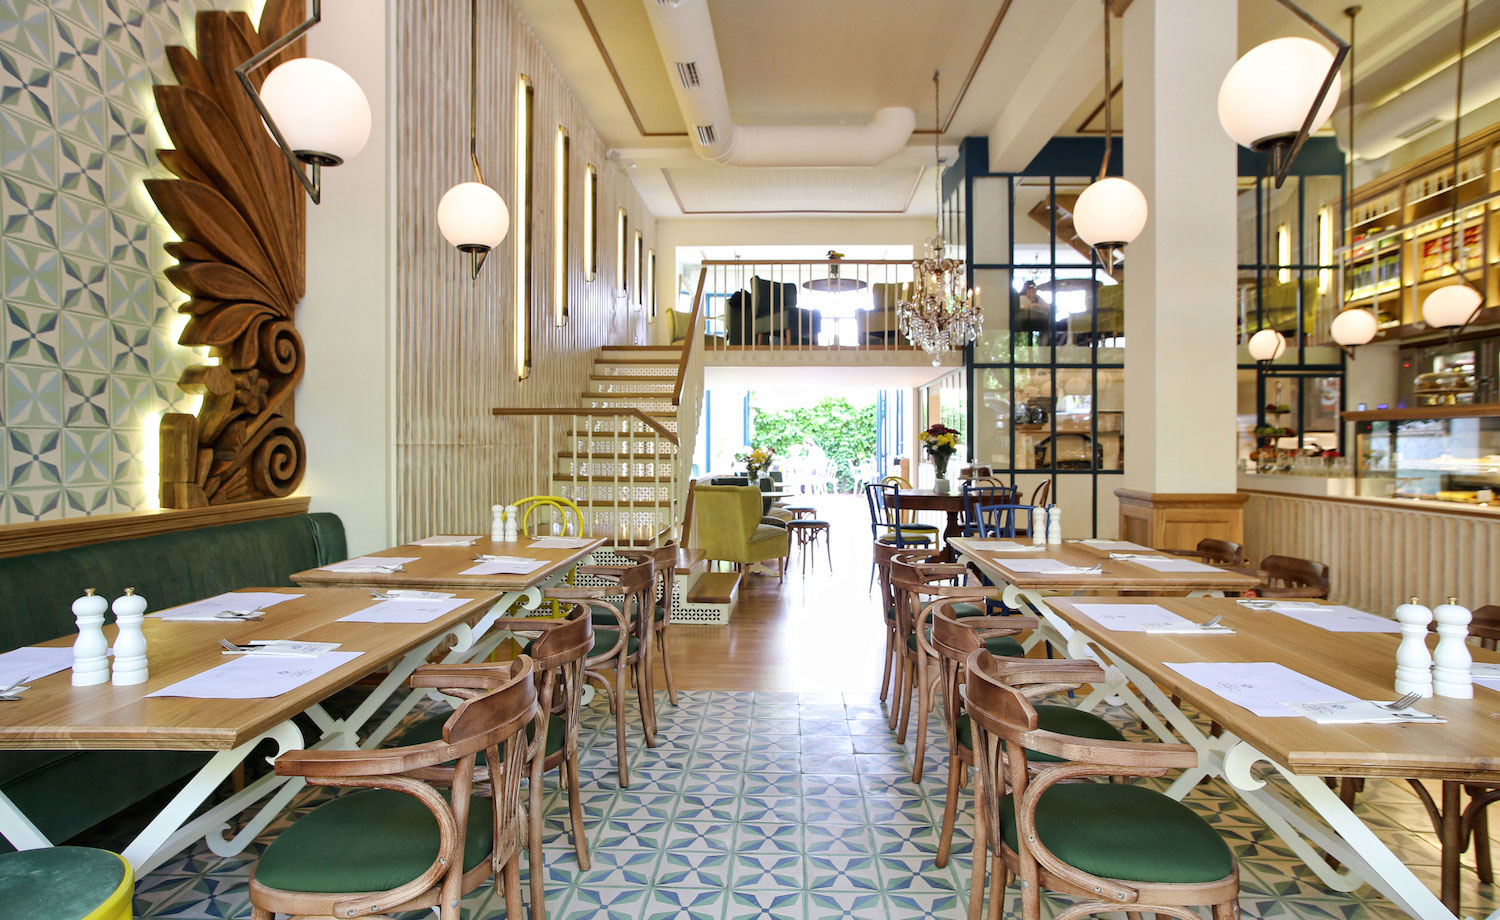 la maison du grec restaurant review athens greece ForLa Maison Du Design